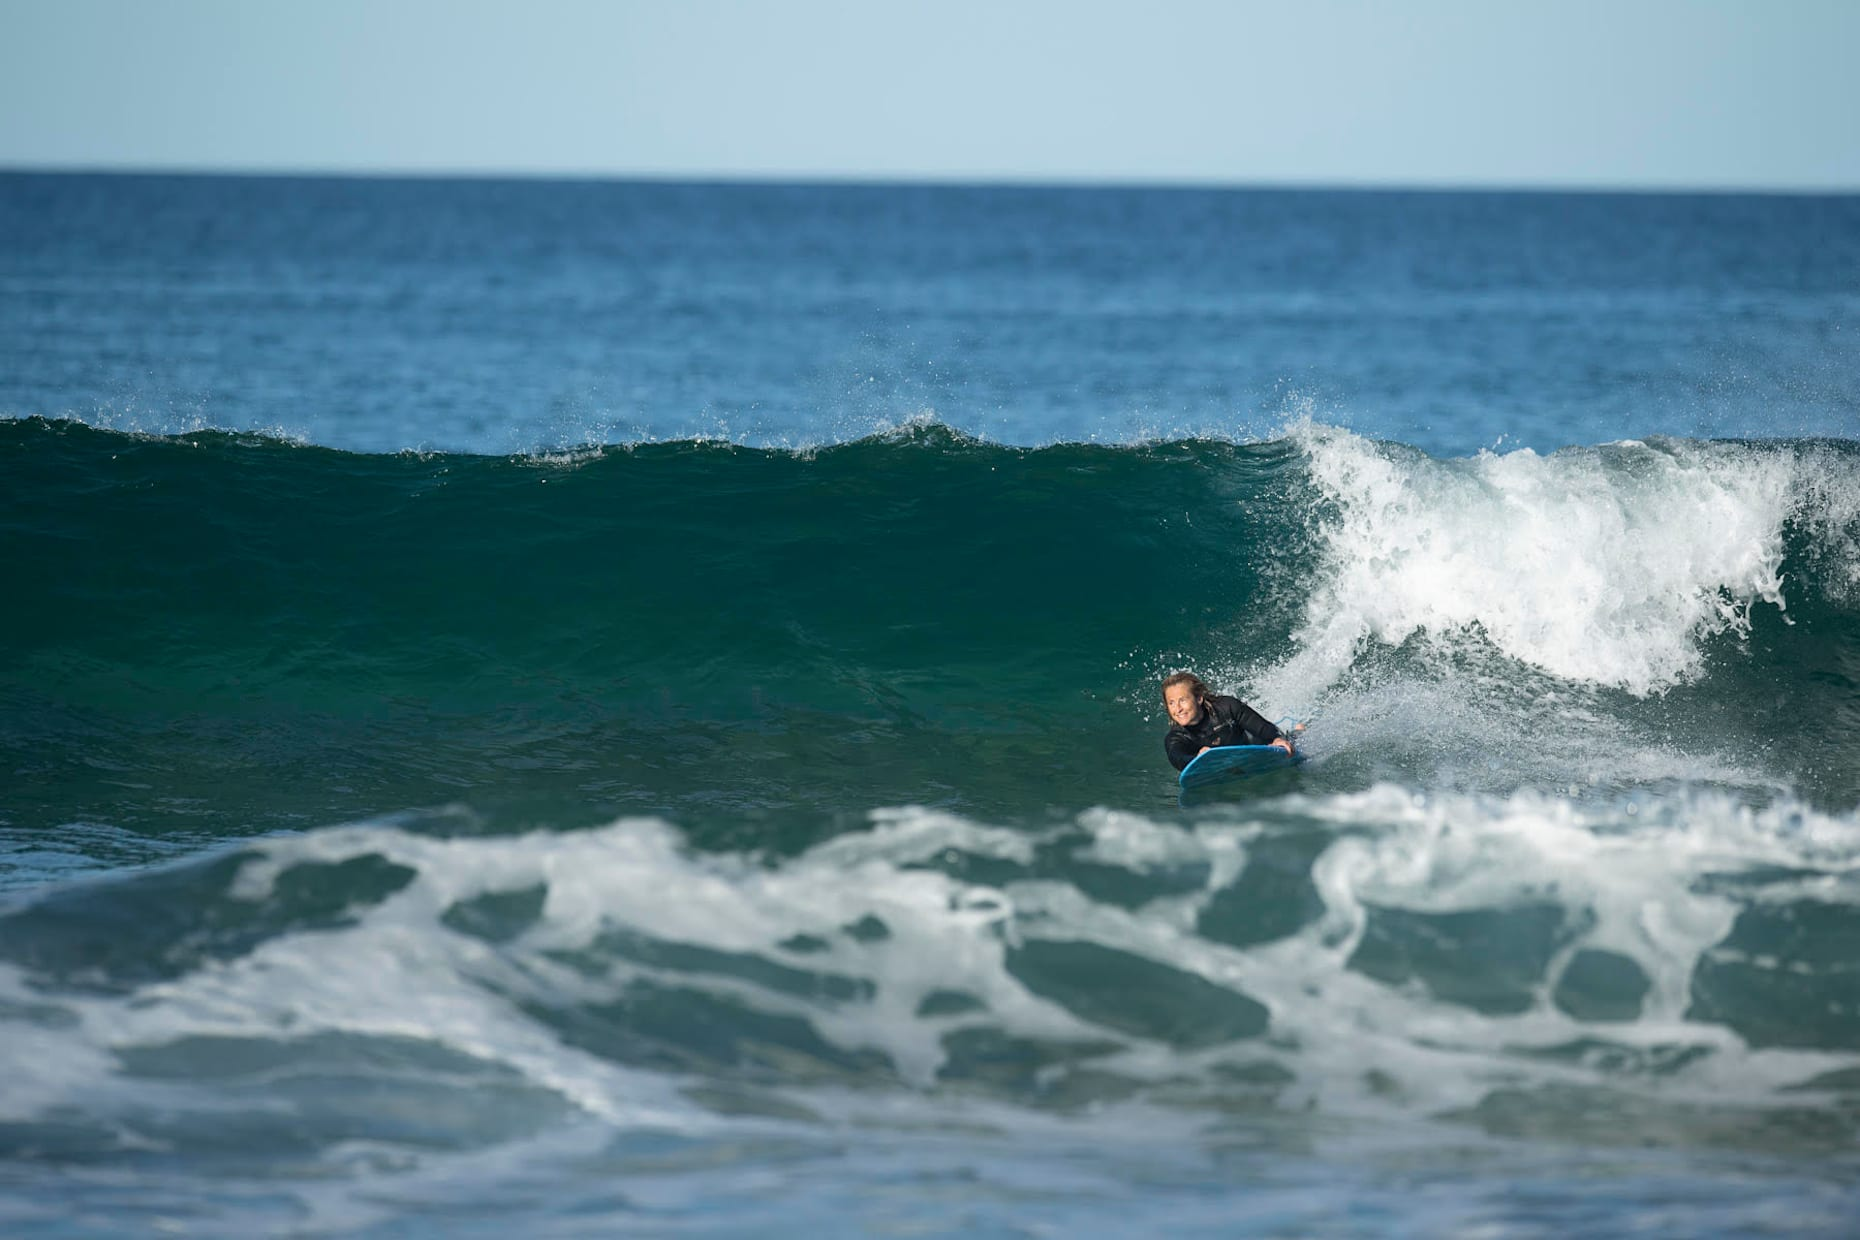 Two-time para surfing world champion Sam Bloom pictured surfing at home in Australia.